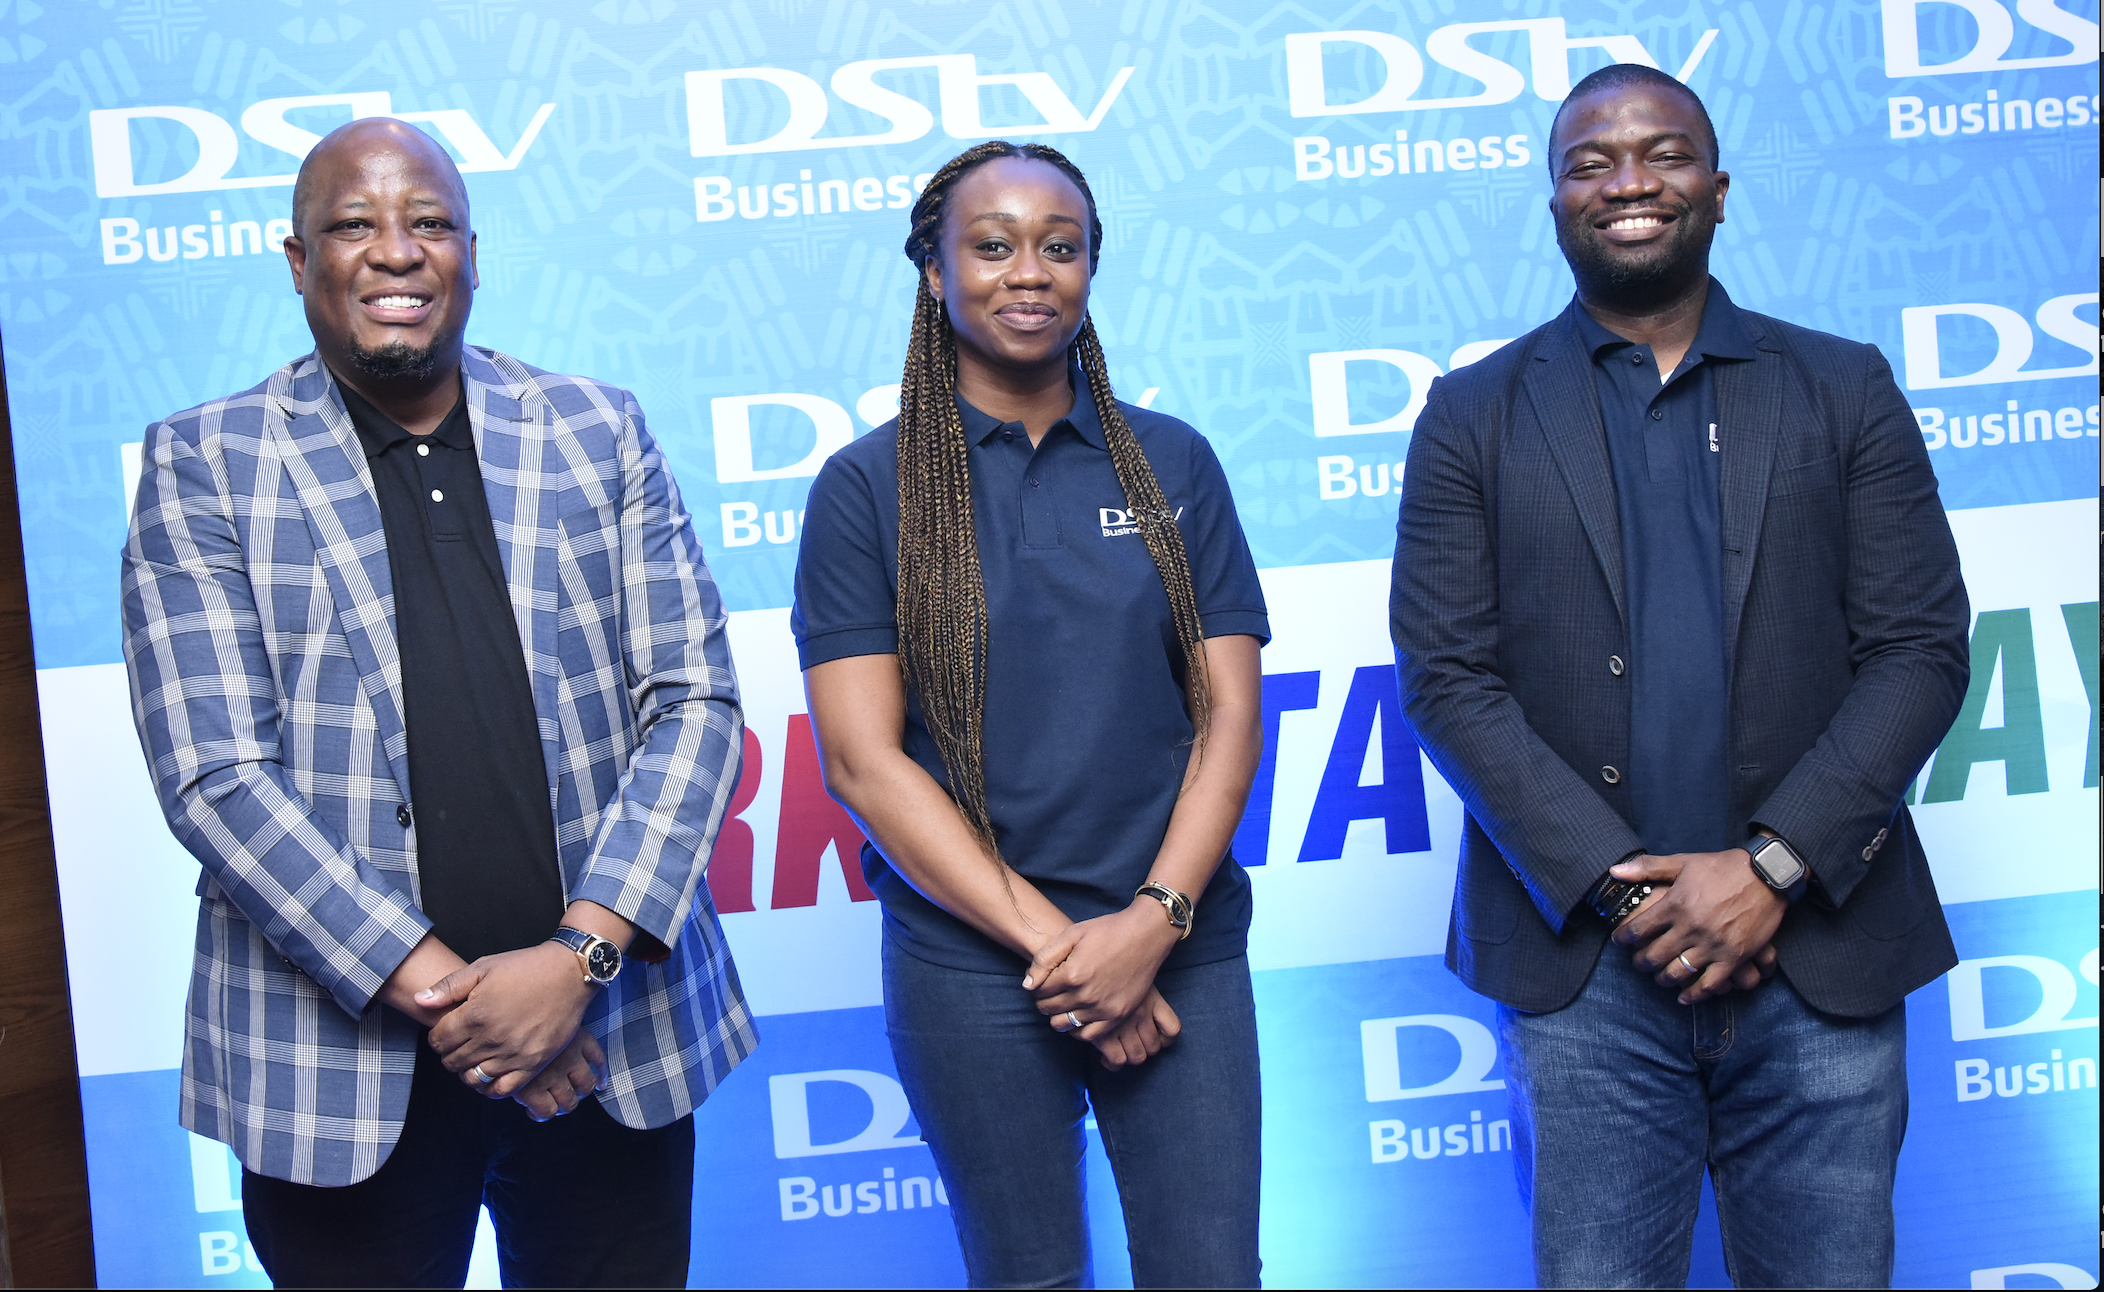 MultiChoice Nigeria introduces new & revamped DStv business packages